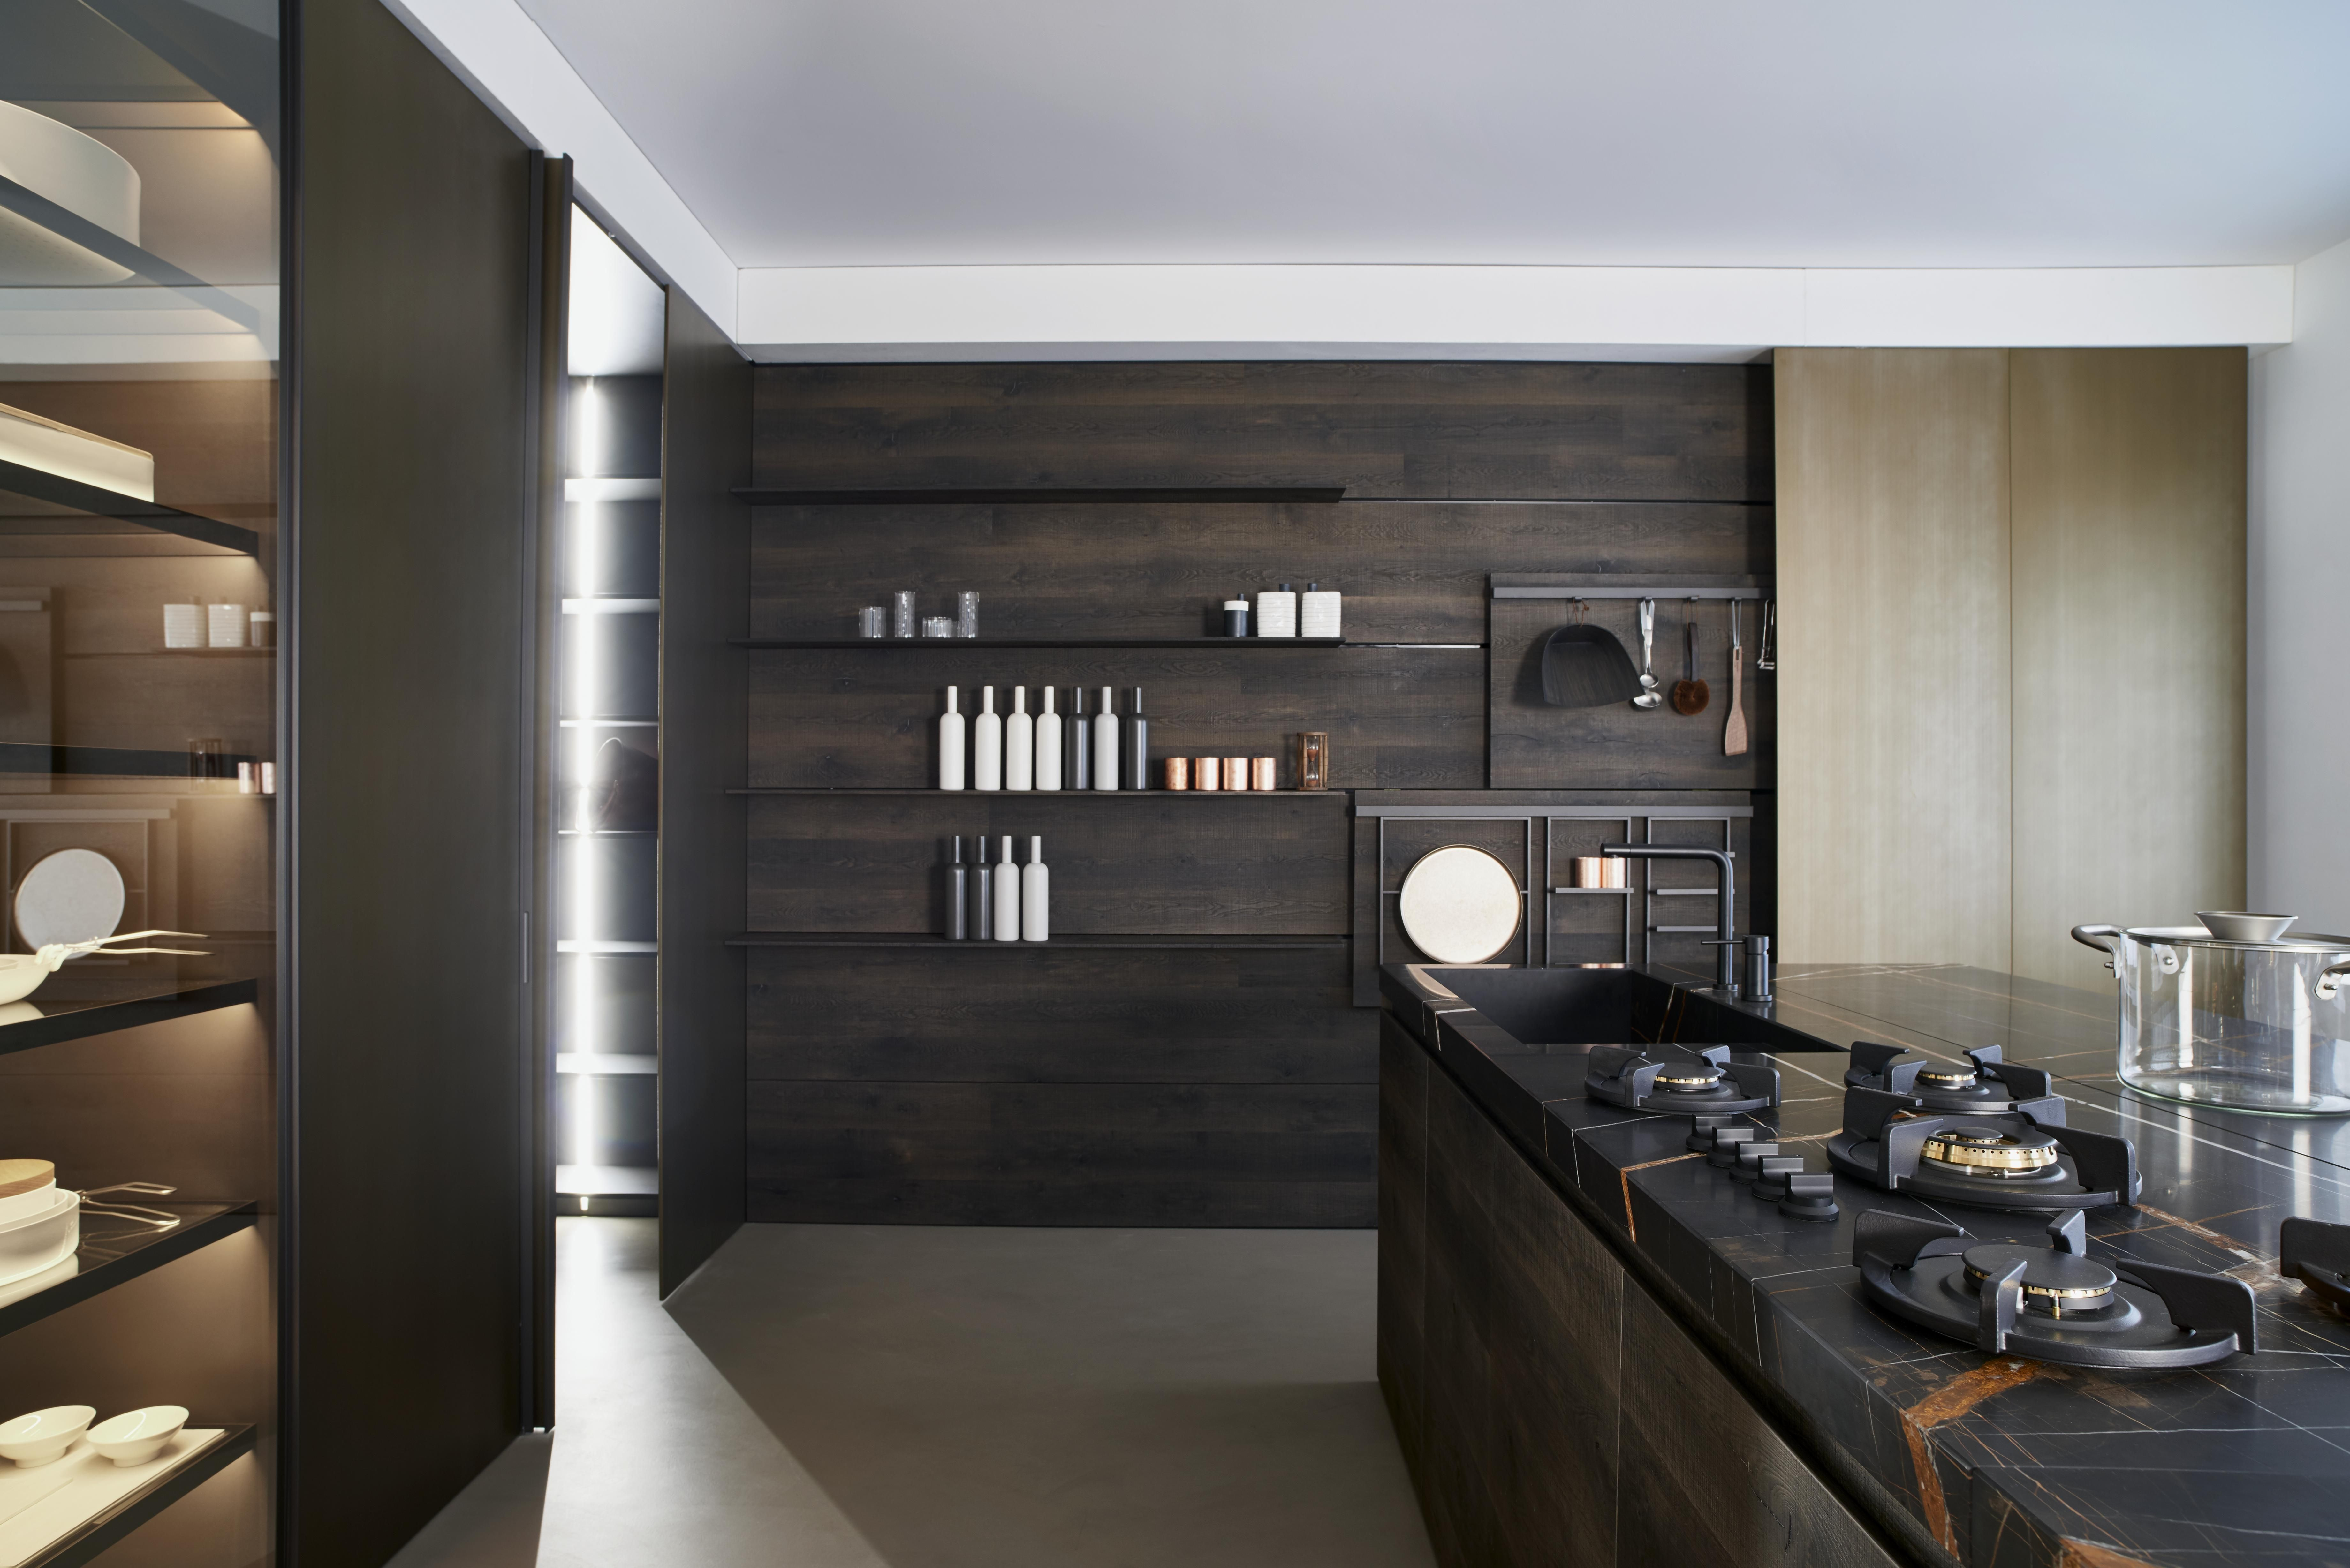 Key Sbabo Cucine | PITT cooking Italy | kitchens | Pinterest | Kitchens